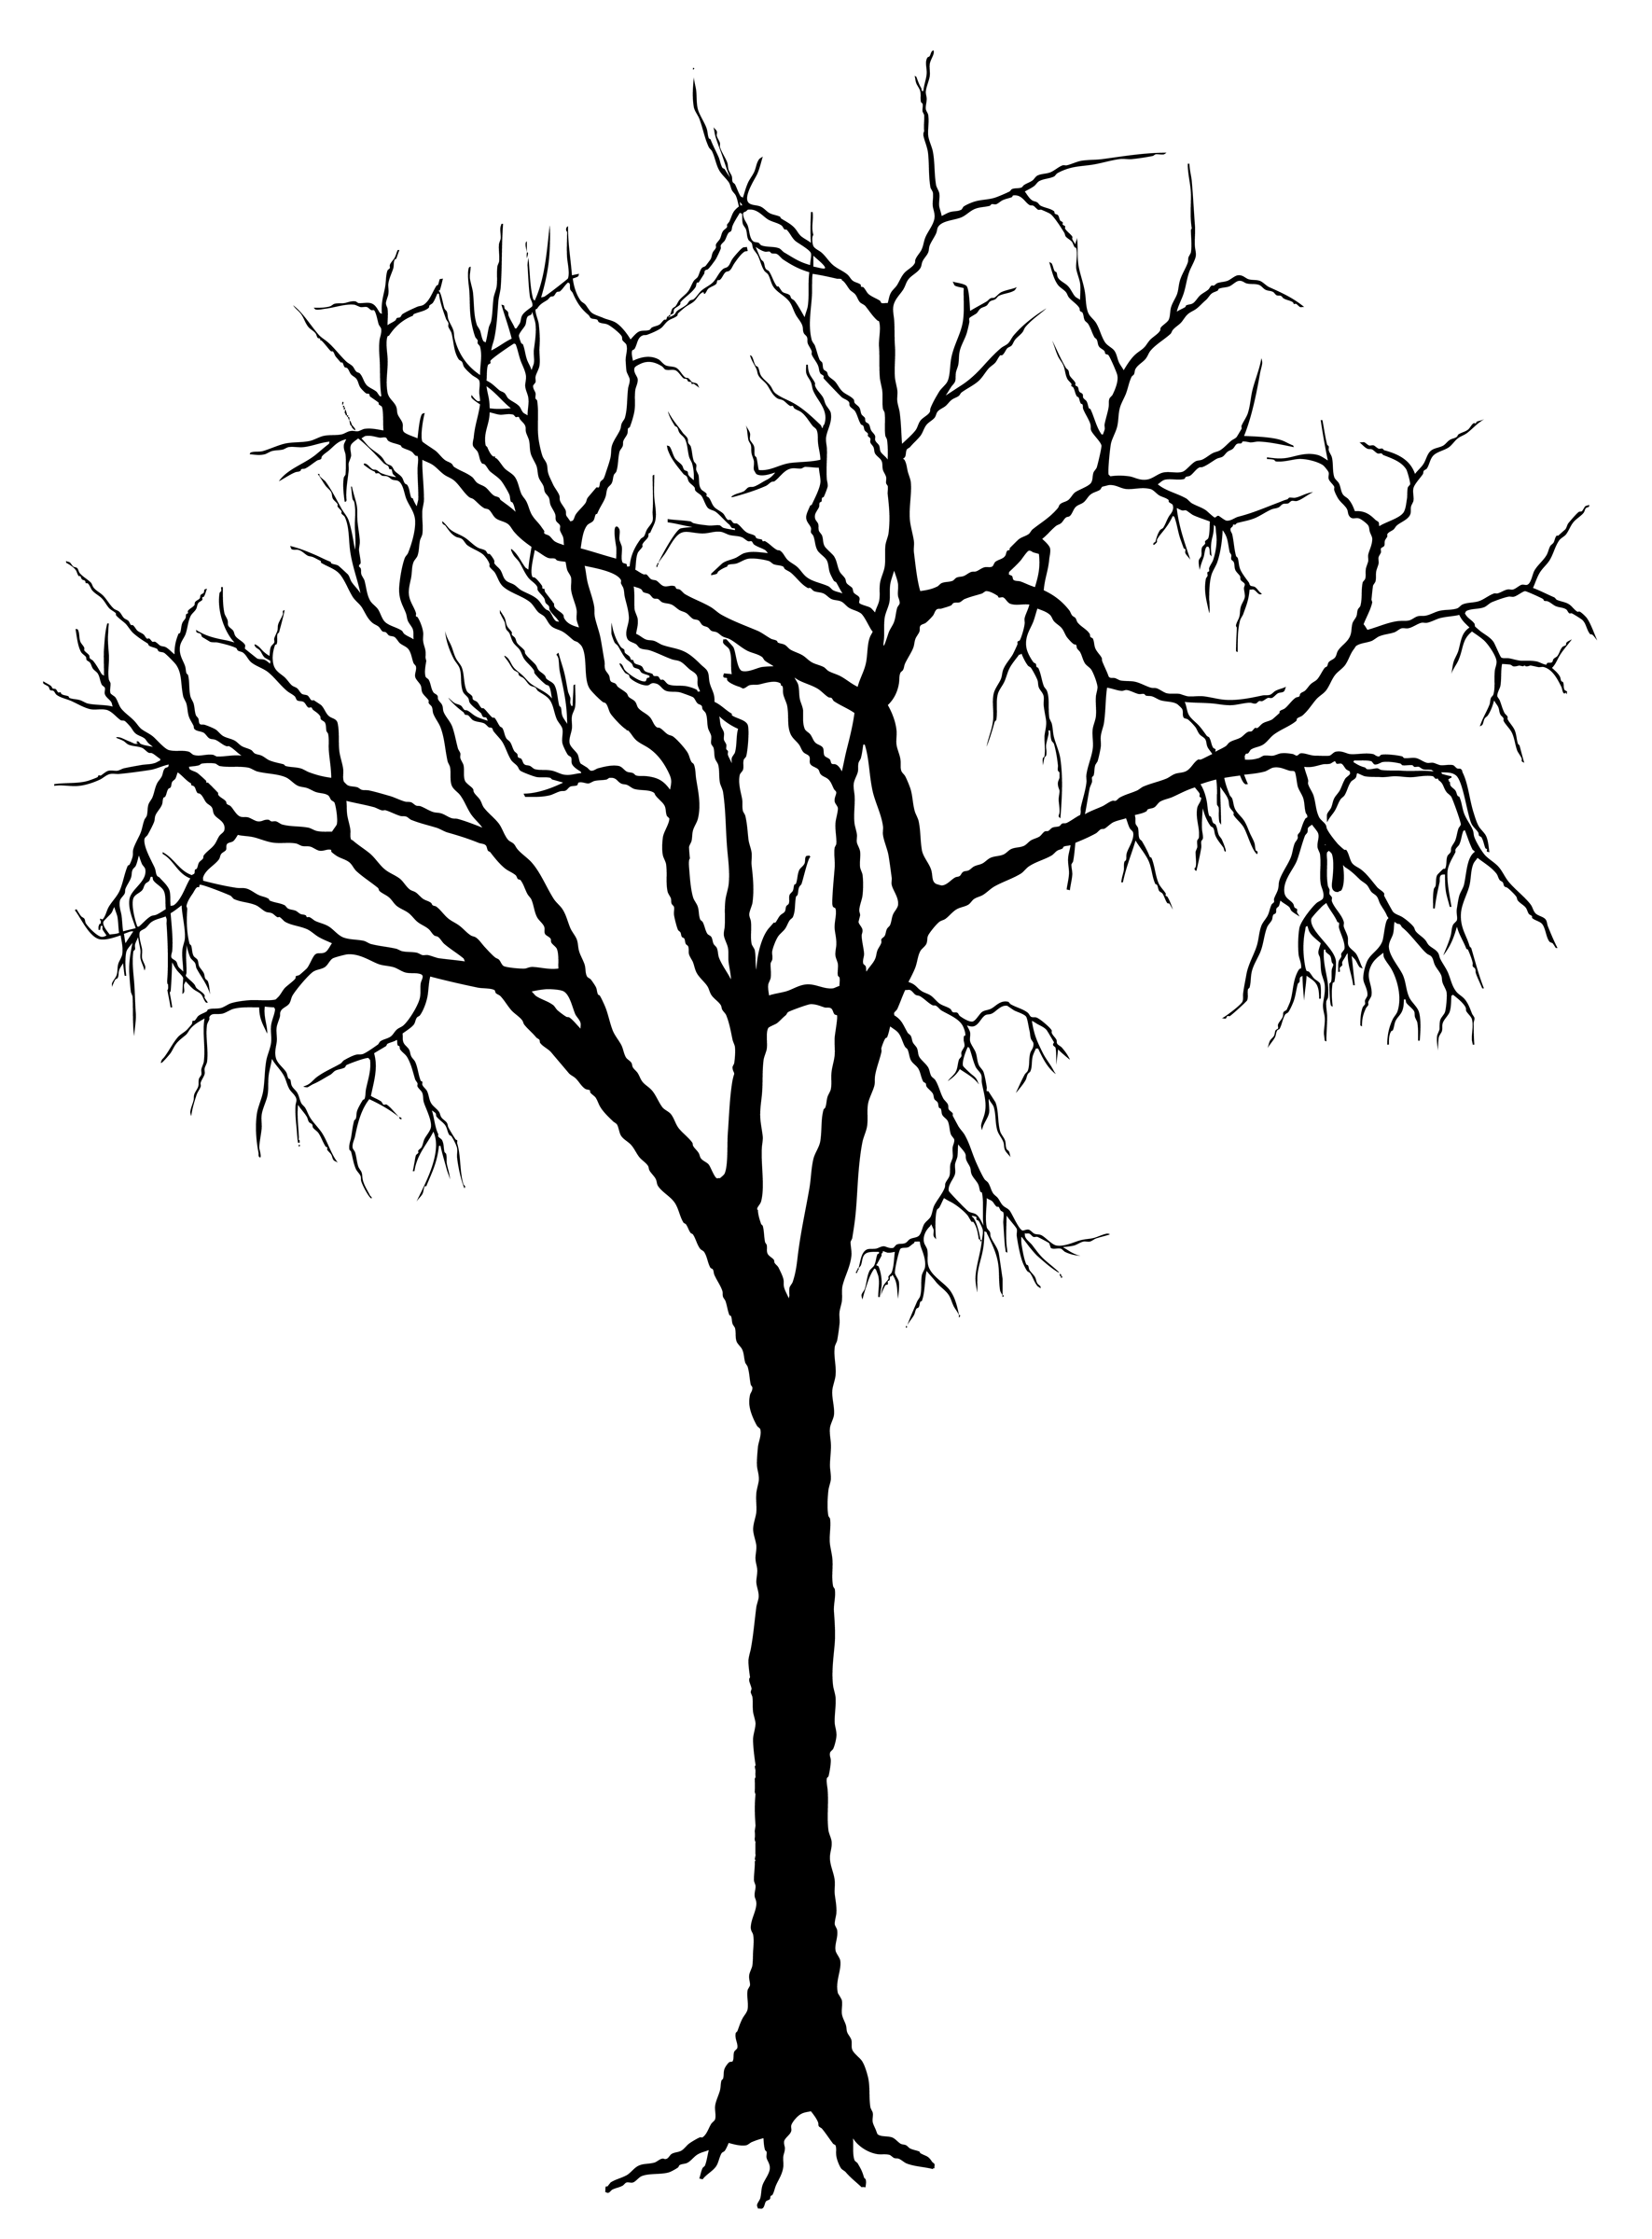 Tree Roots Silhouette Clip Art.